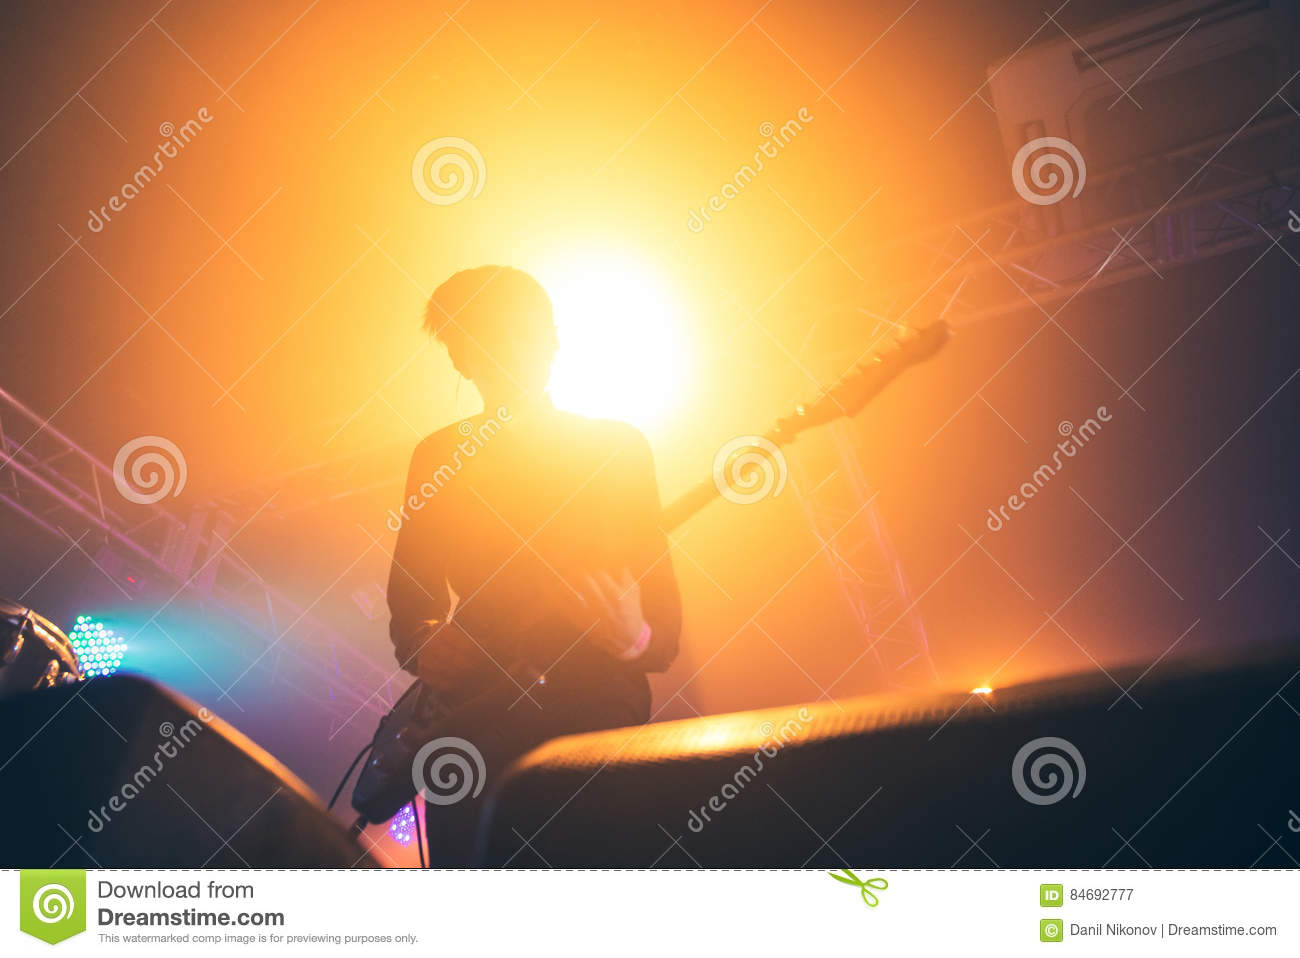 Free Photography Stock Guitar Stock Images Download 135 432 Royalty Free Photos